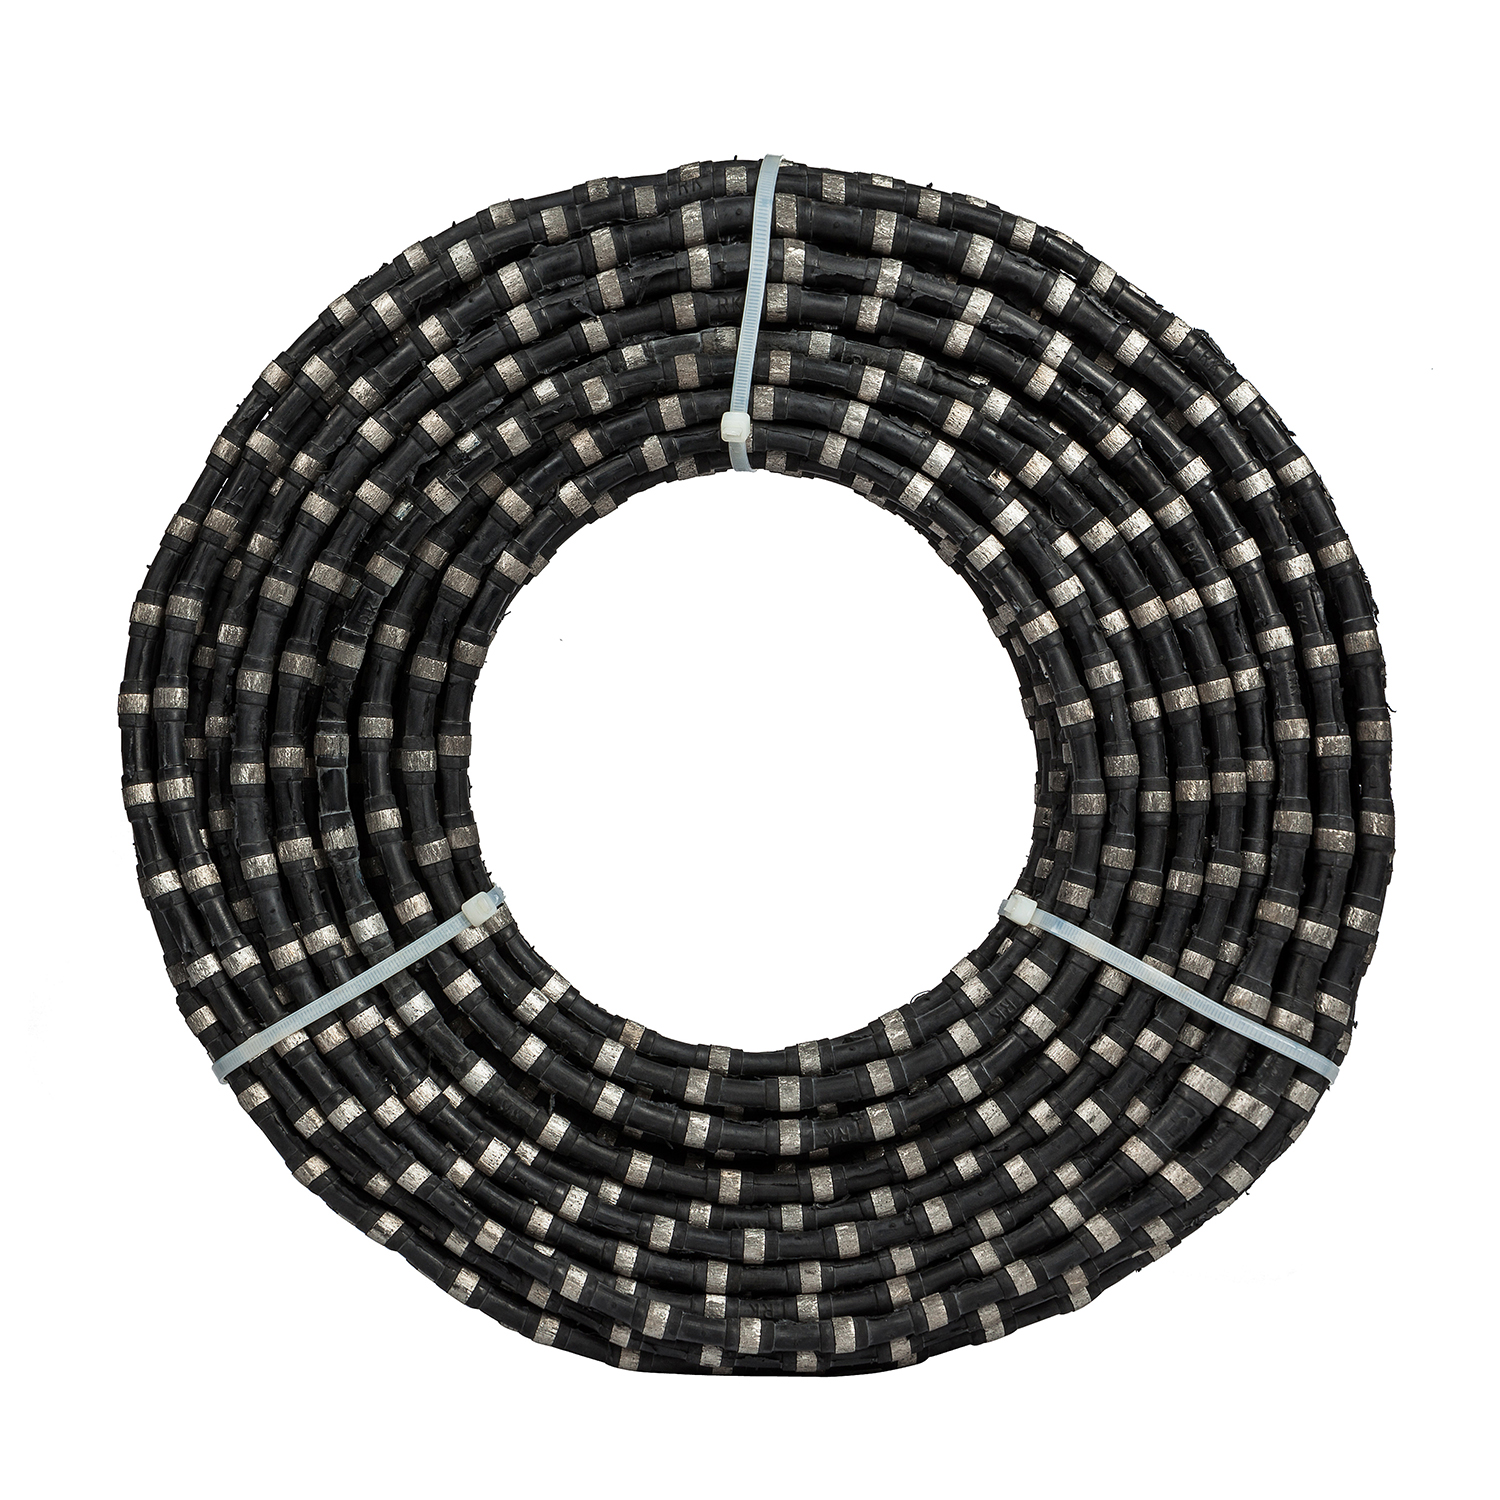 Diamond wire saw for concrete and stone sawing